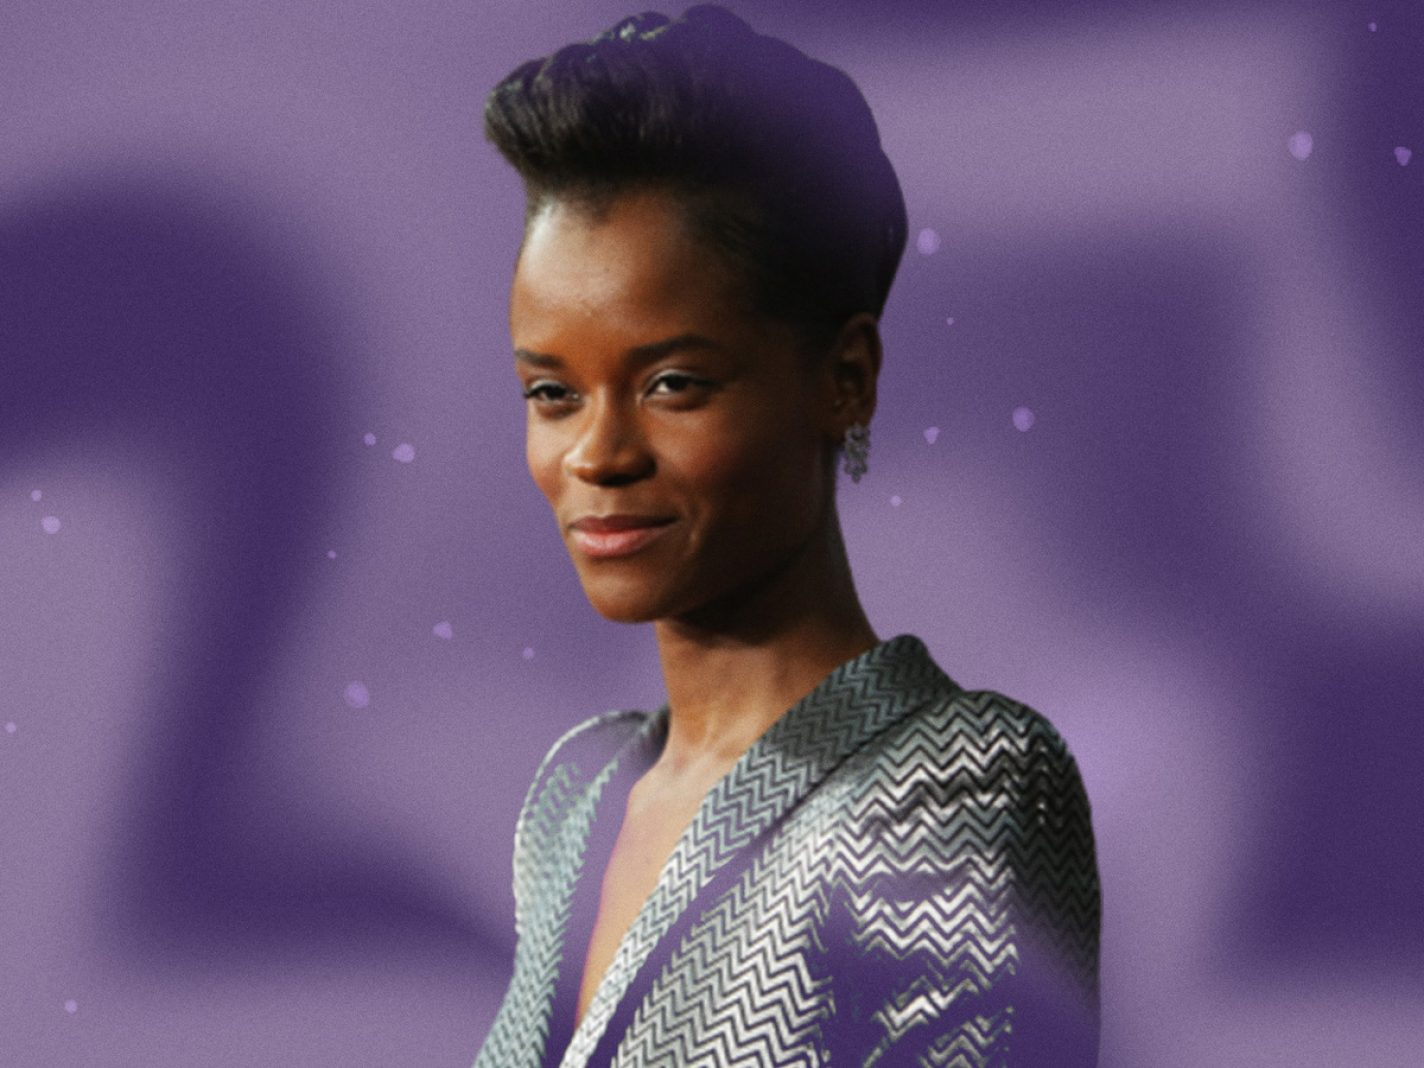 Fans turn on Black Panther's Letitia Wright for sharing transphobic video